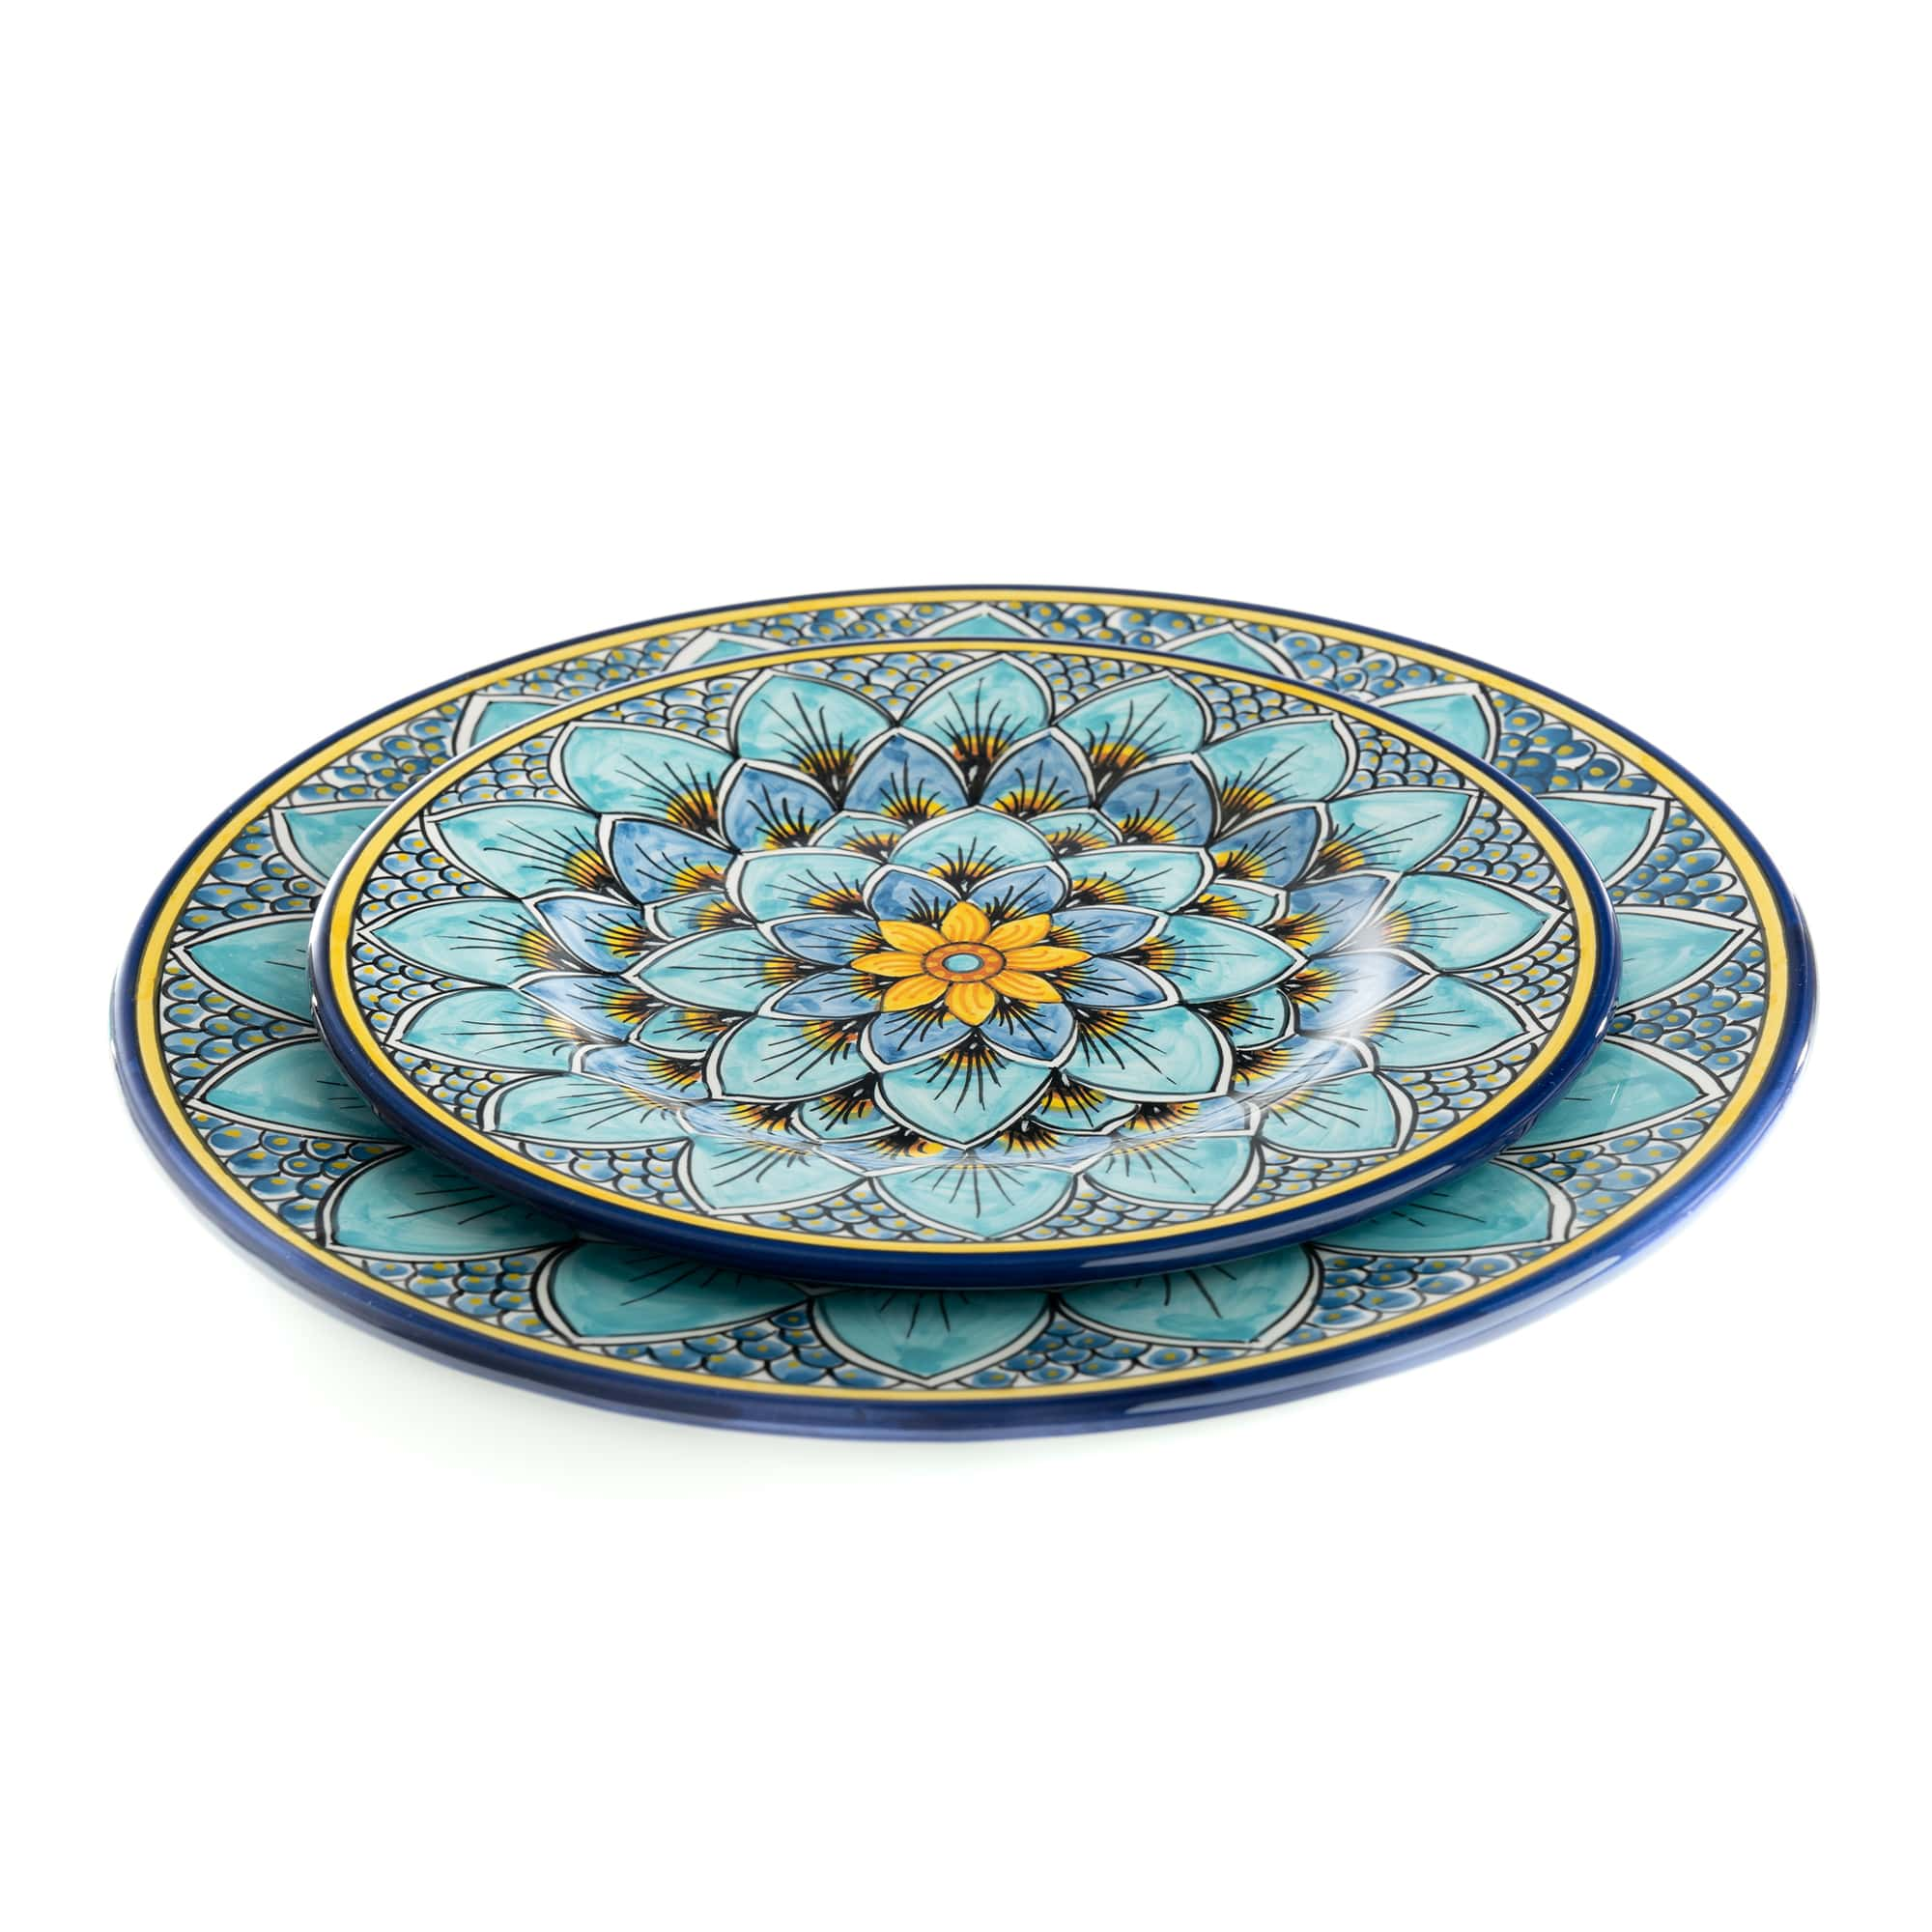 Geribi Dinnerware (PG09) Blues Peacock Design